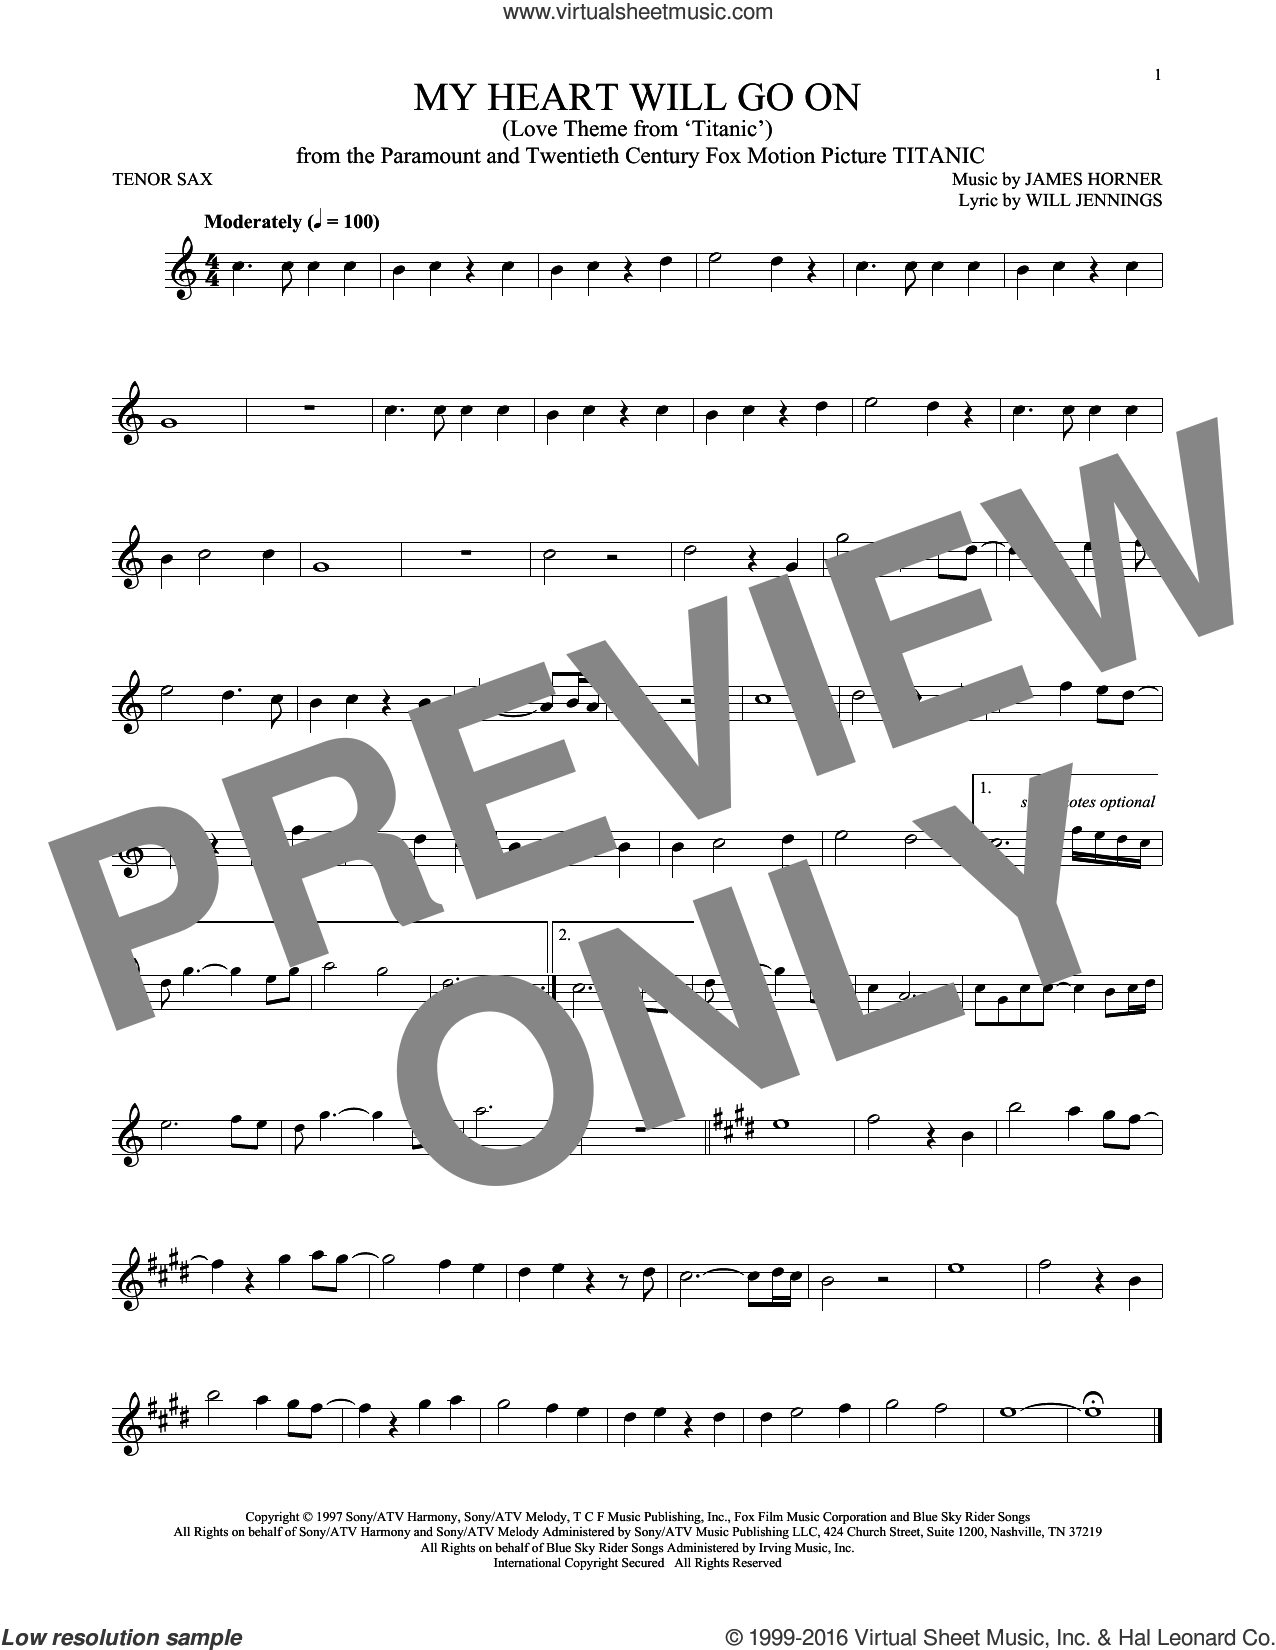 My Heart Will Go On (Love Theme From 'Titanic') sheet music for tenor saxophone solo by Celine Dion, James Horner and Will Jennings, intermediate skill level